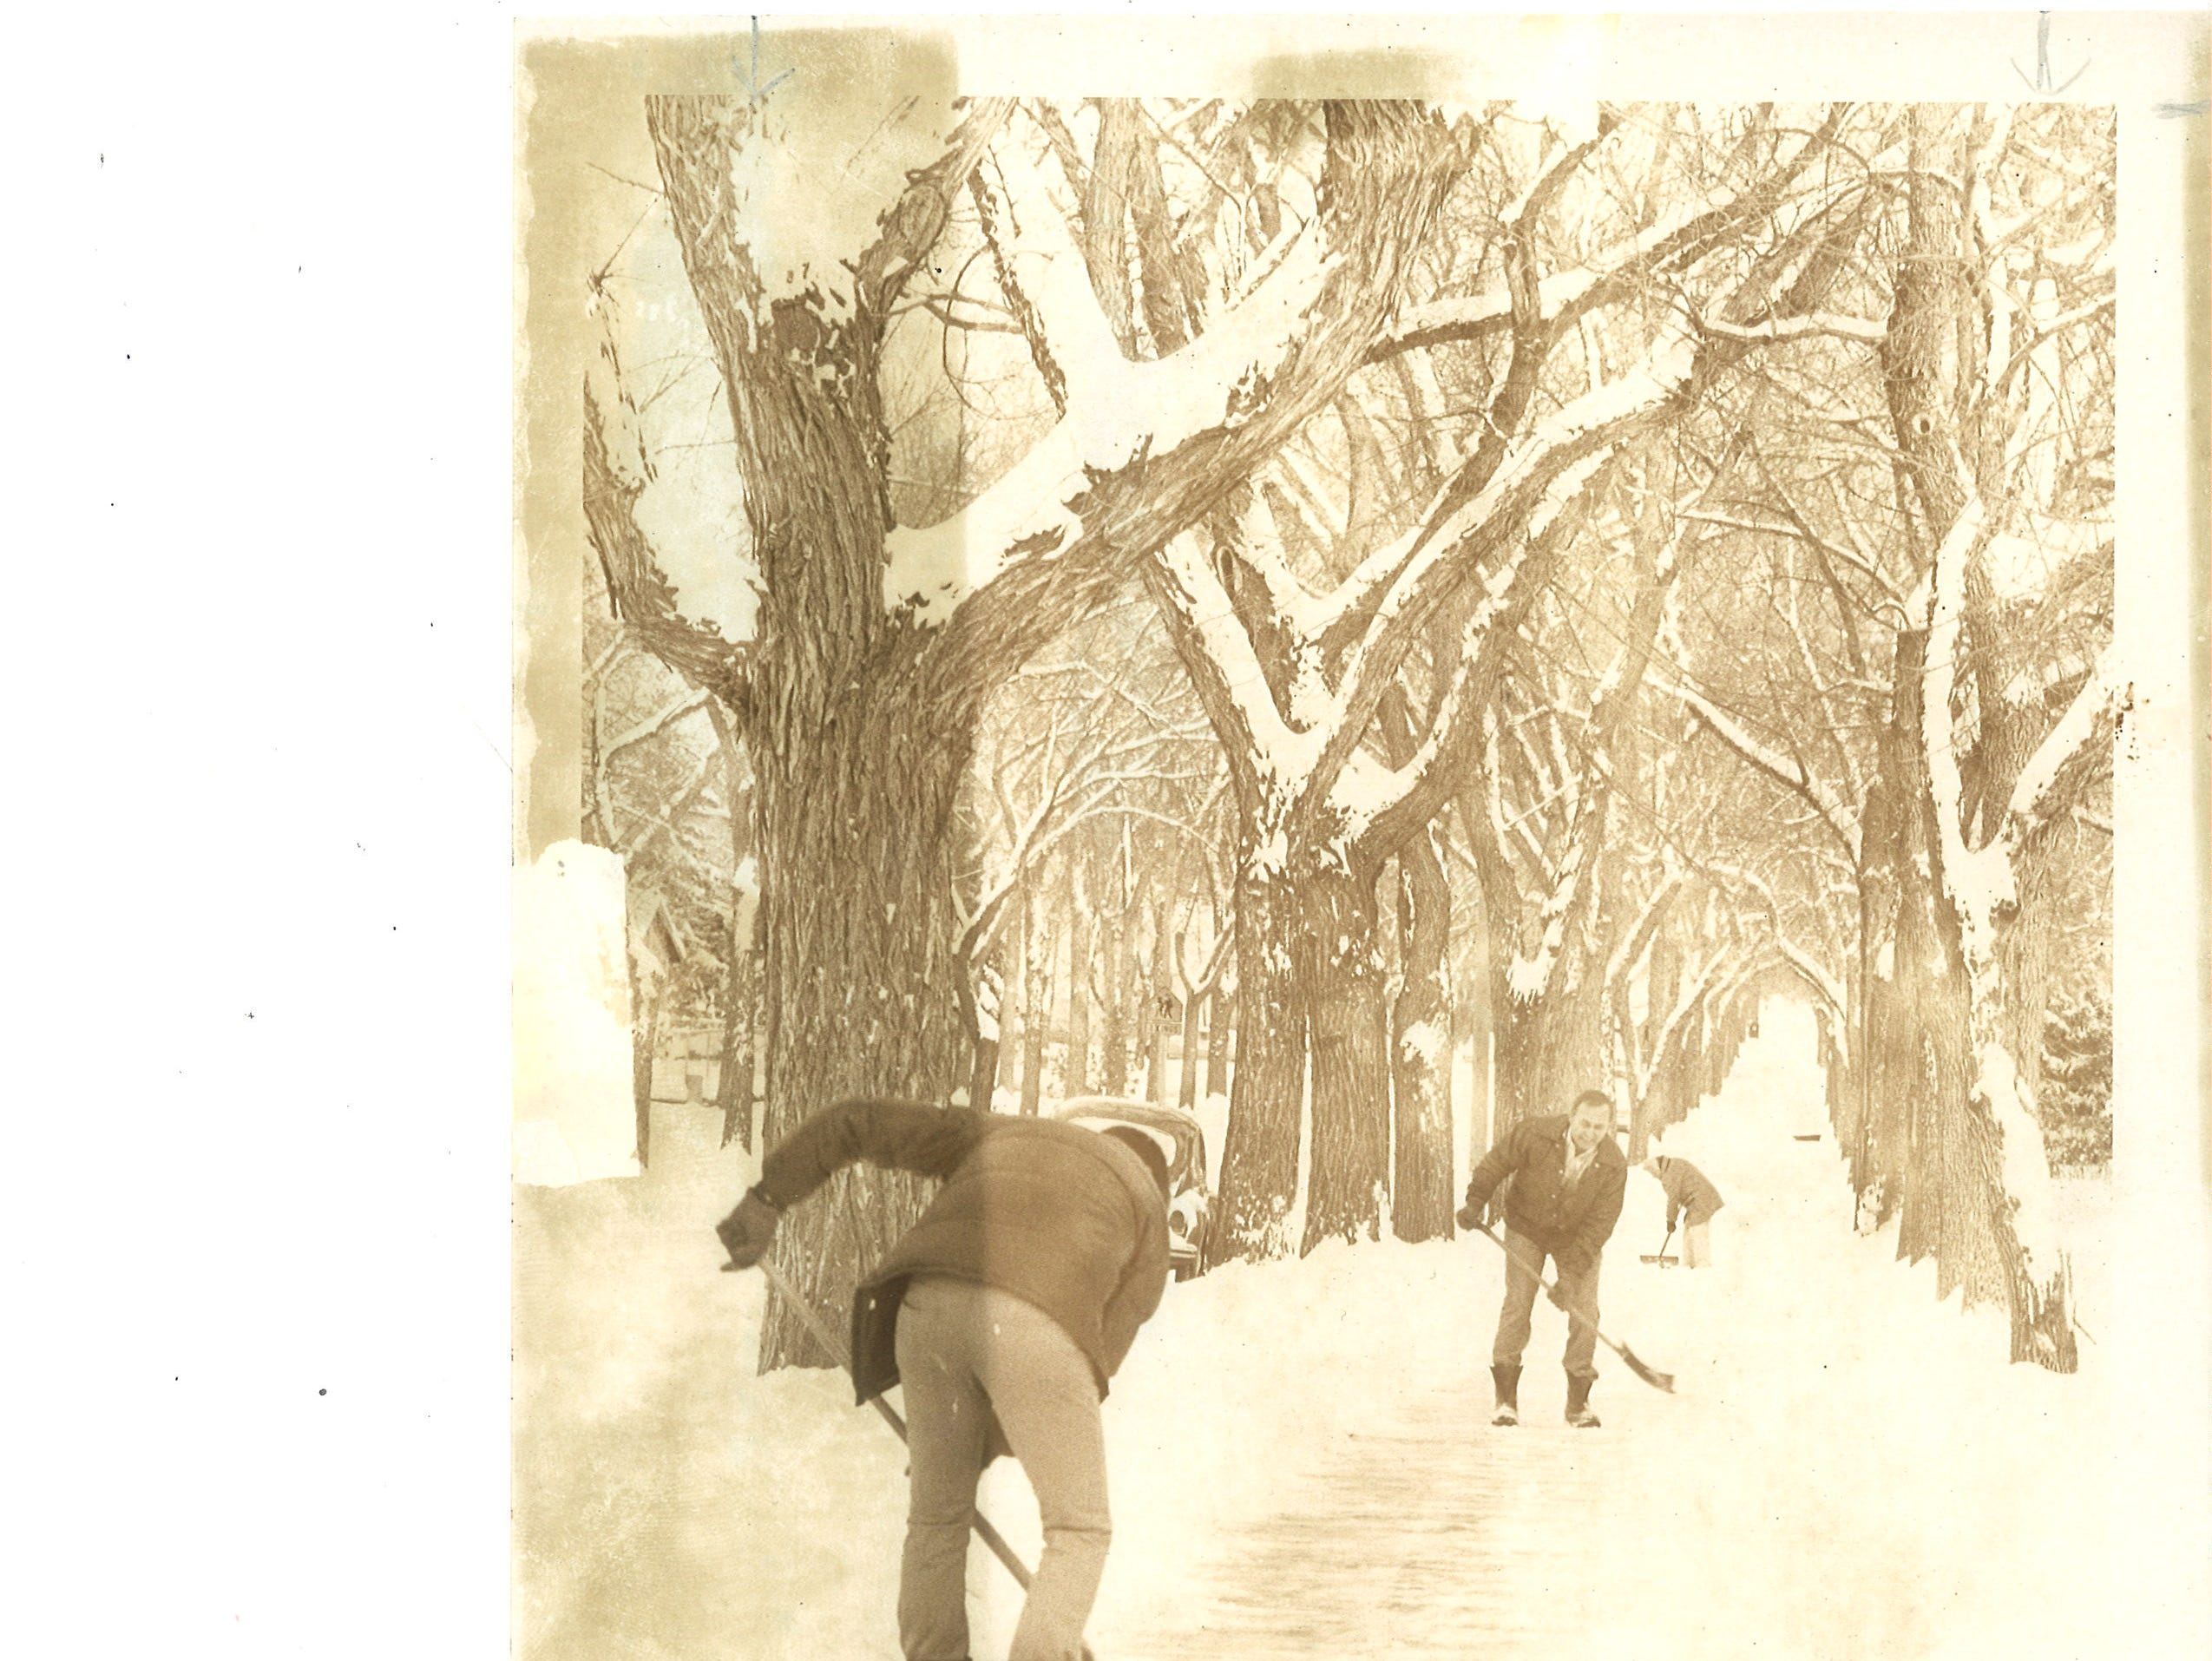 Life in Great Falls 40 years ago: A neighborhood works to shovel off the sidewalk